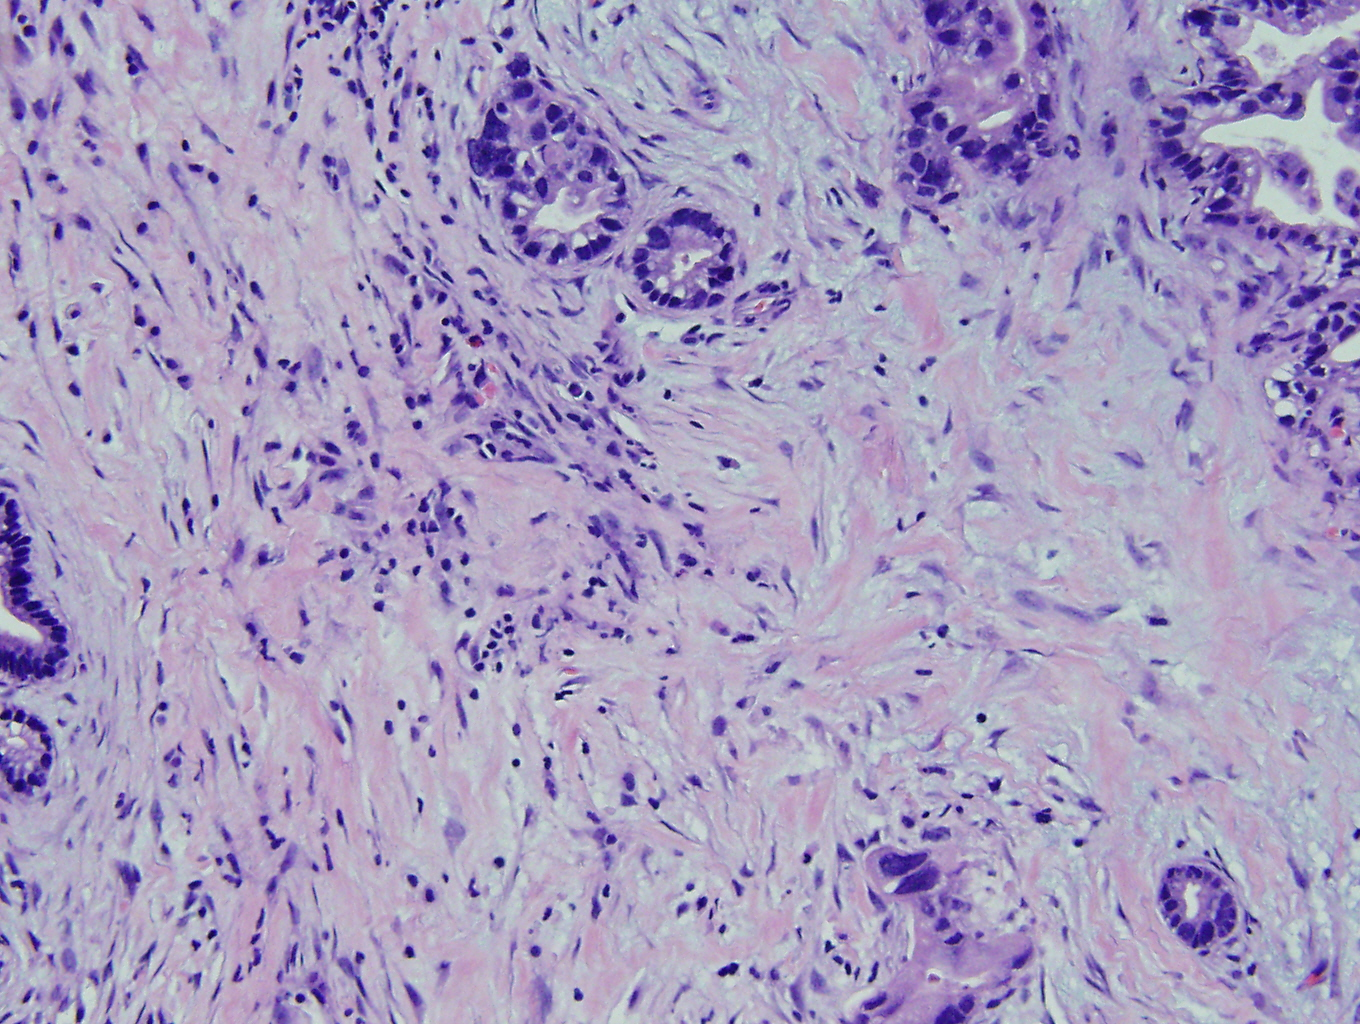 Case of the Month, Mar. 2013: Figure 3